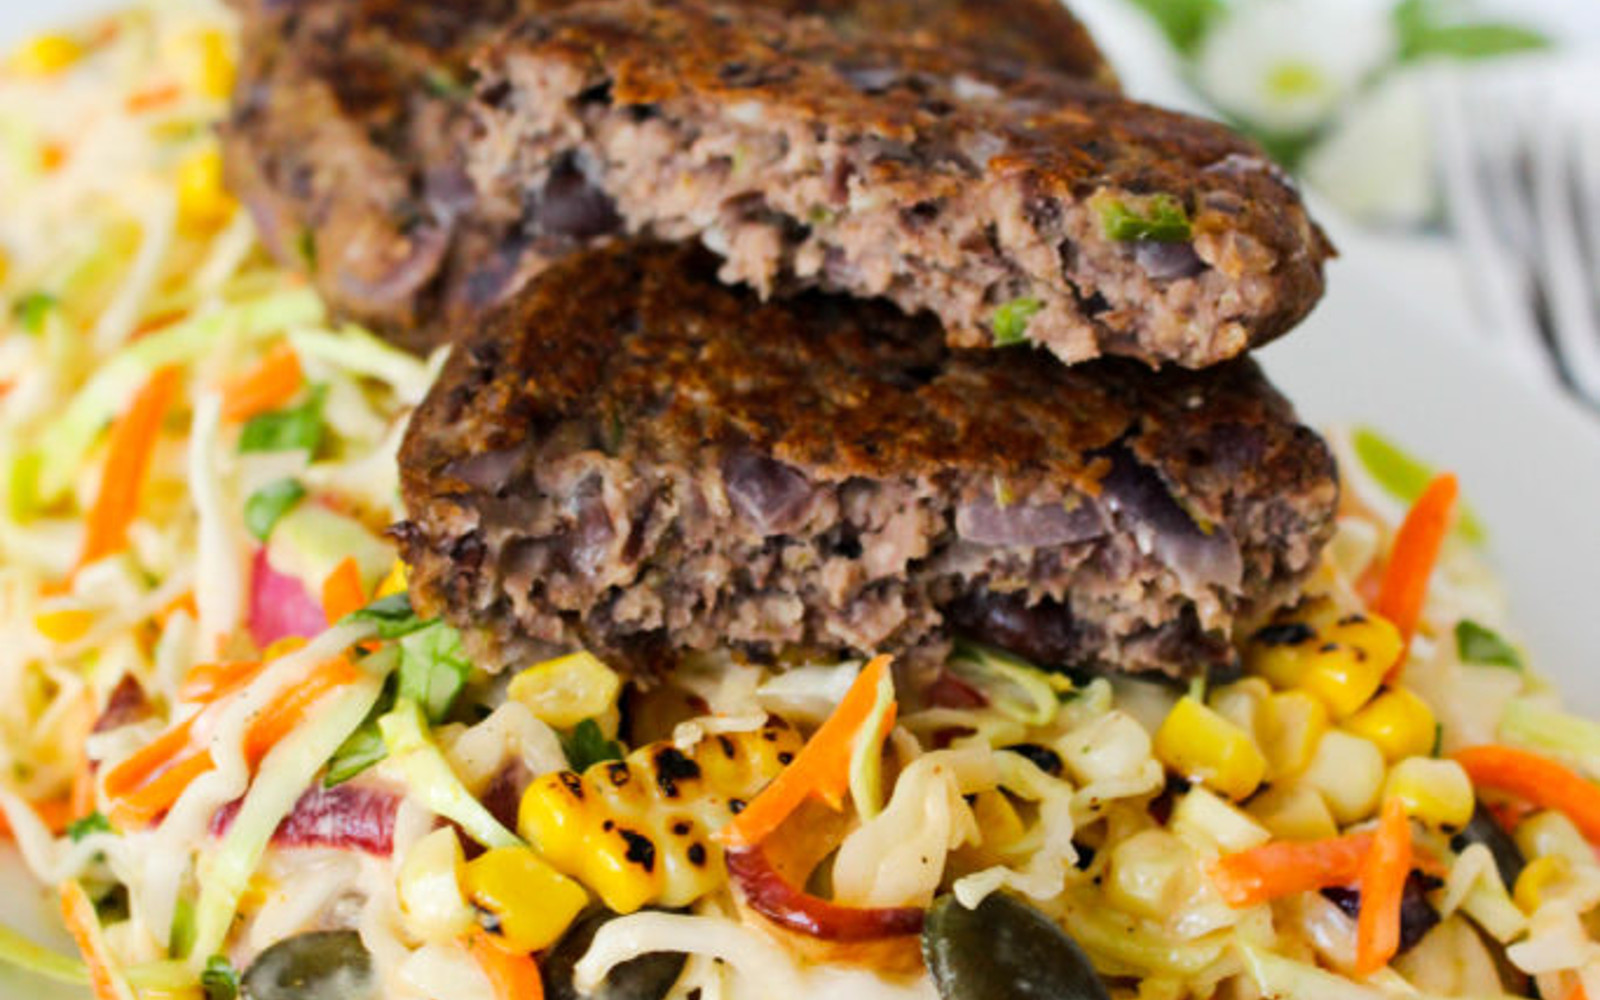 Gluten-FreeVegan Jalapeño Black Bean Patties with Mexican Coleslaw cut open